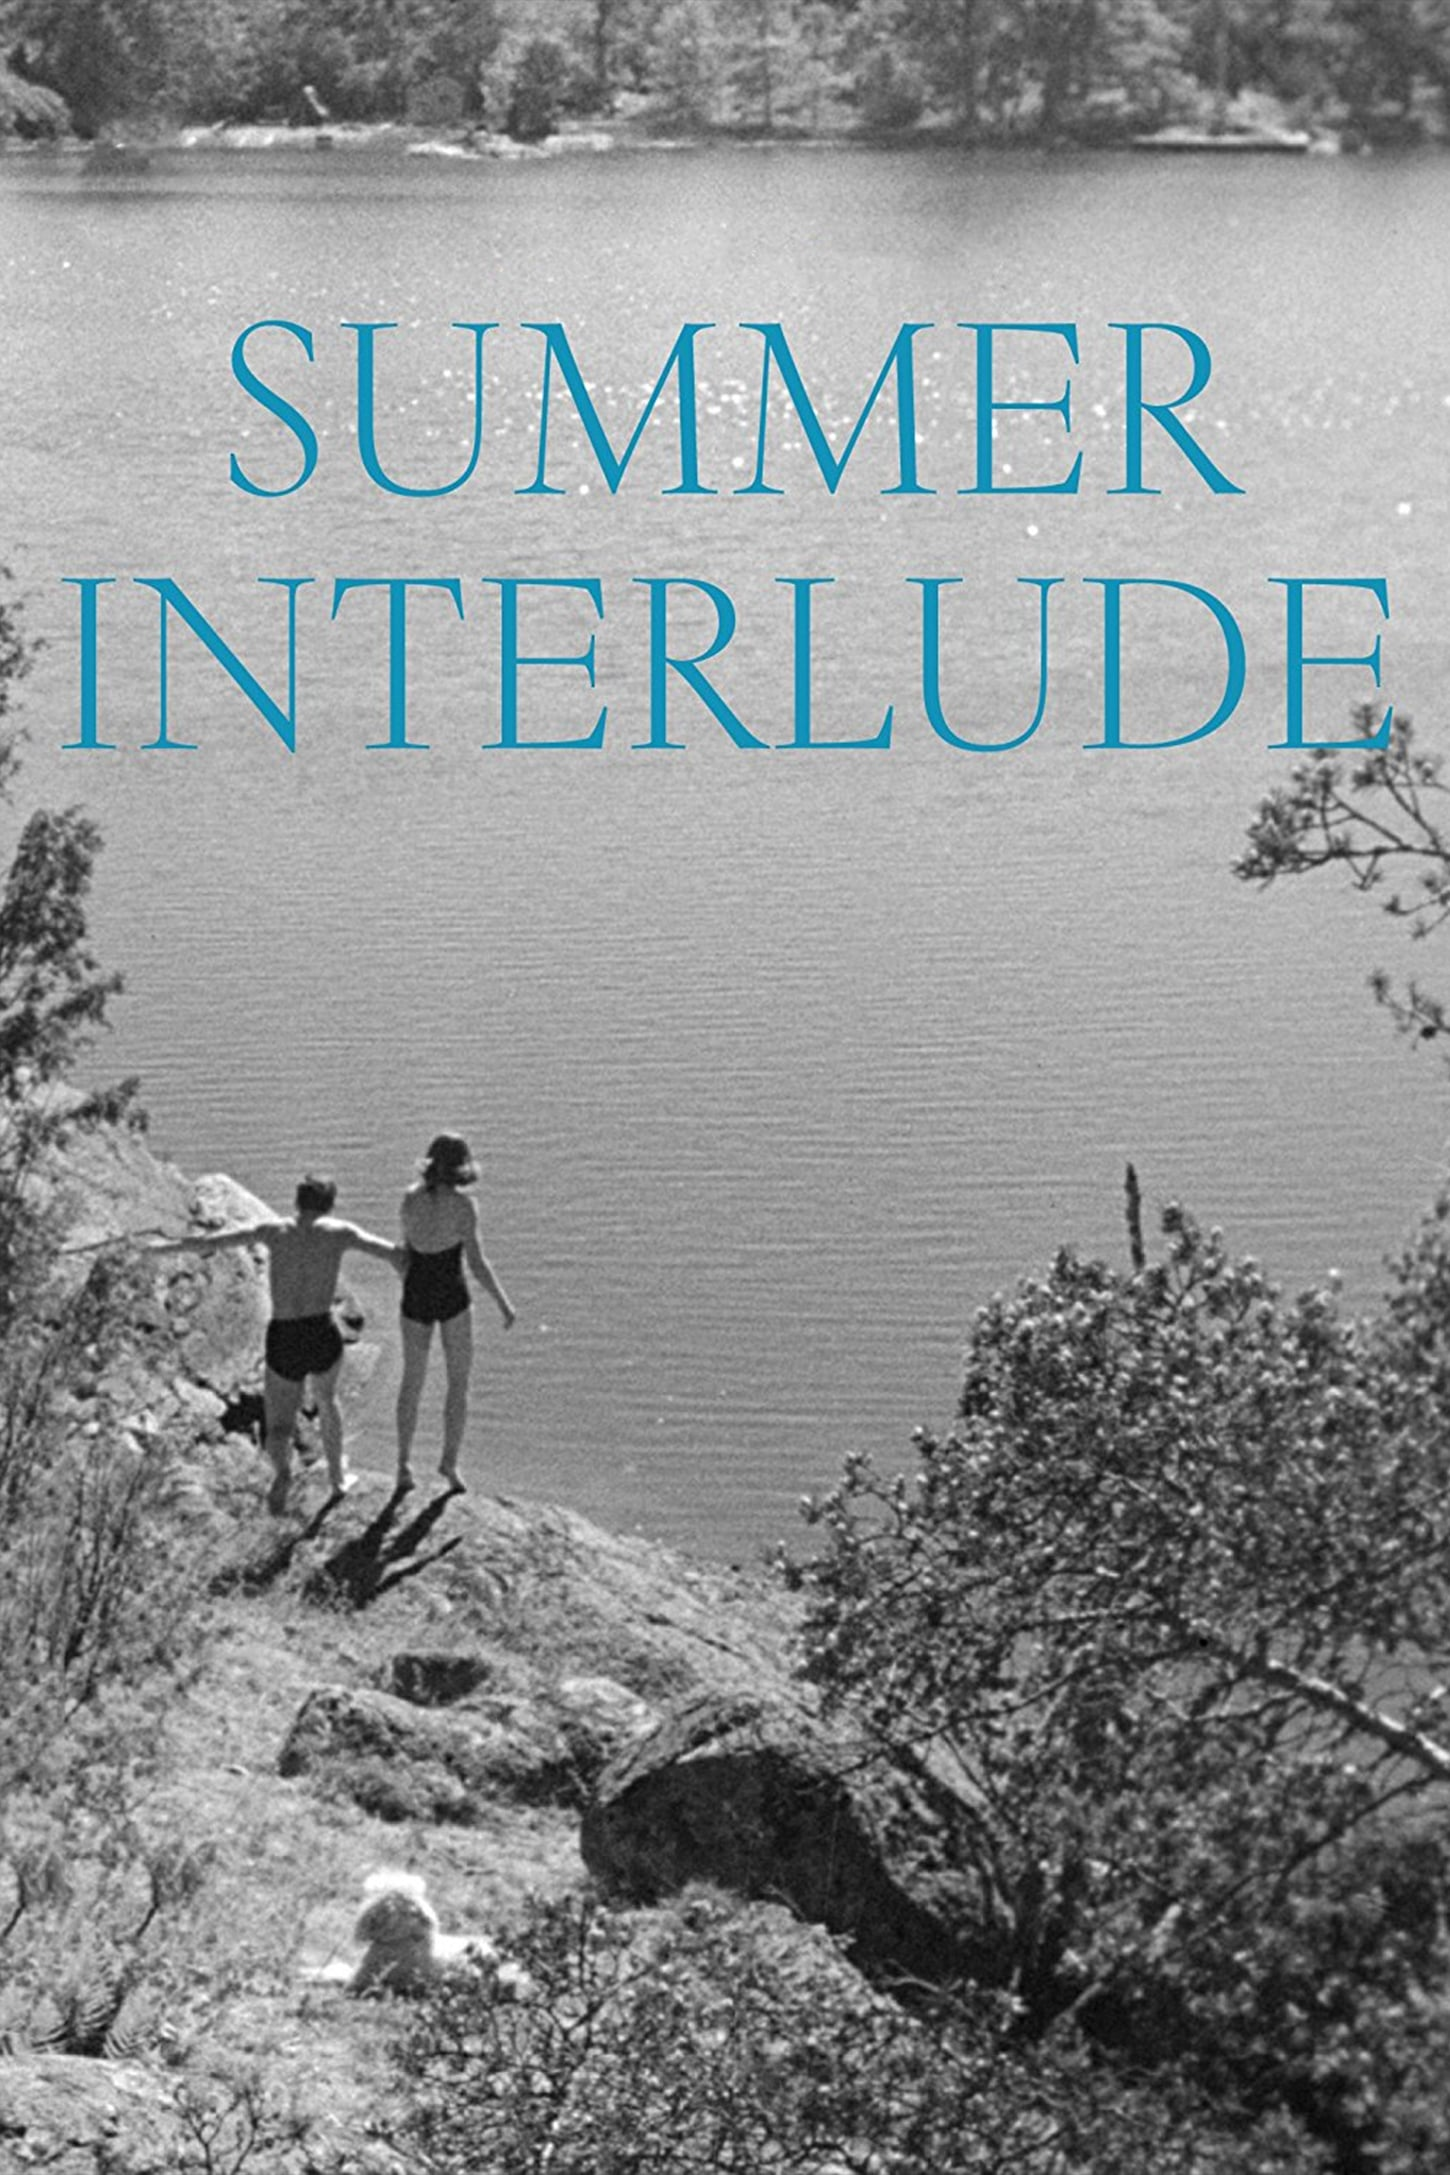 Poster for SUMMER INTERLUDE